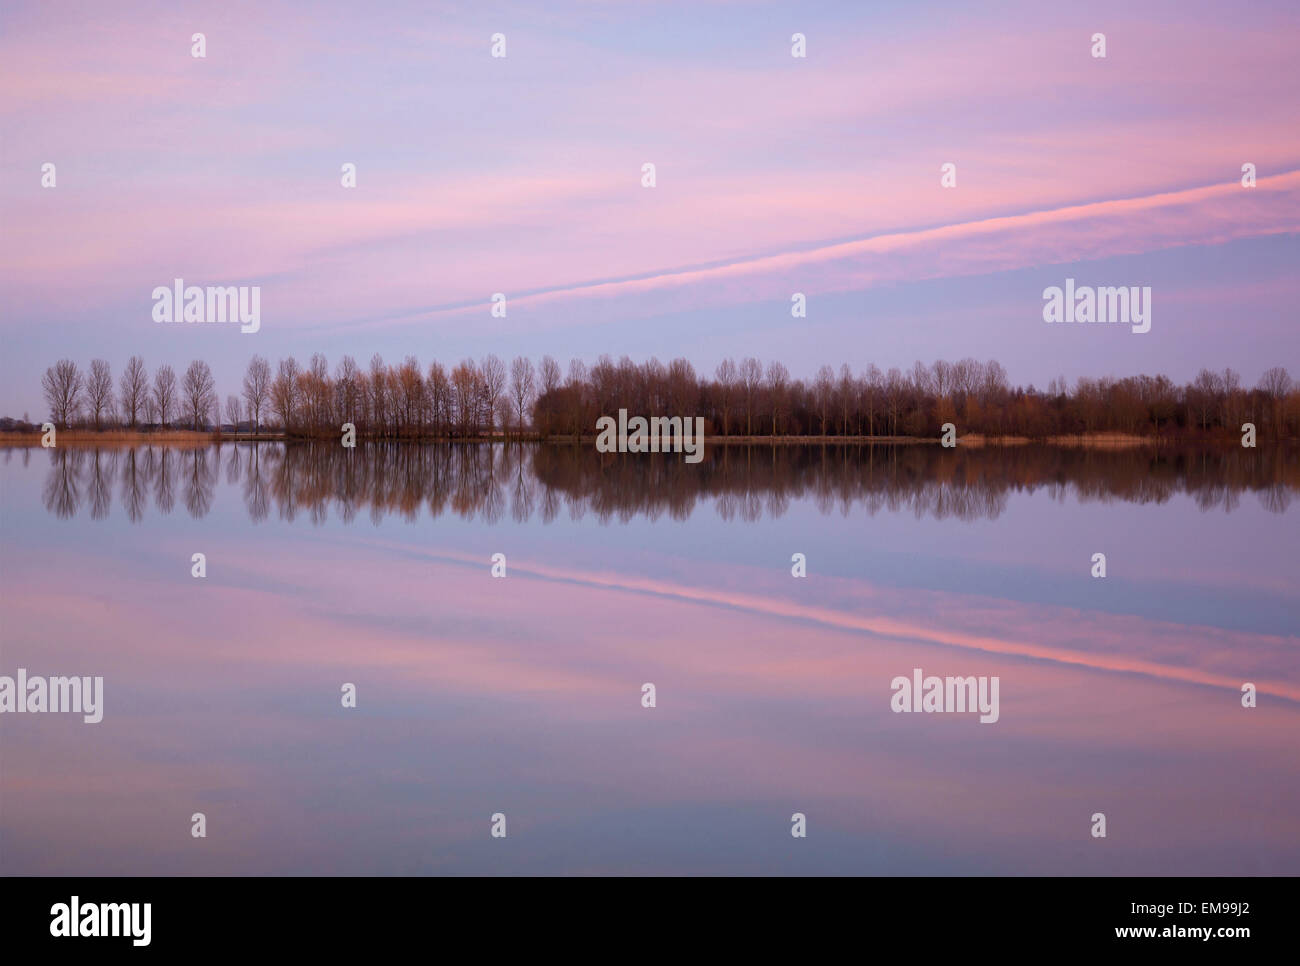 Sunset over a lake with reflections in water - Stock Image